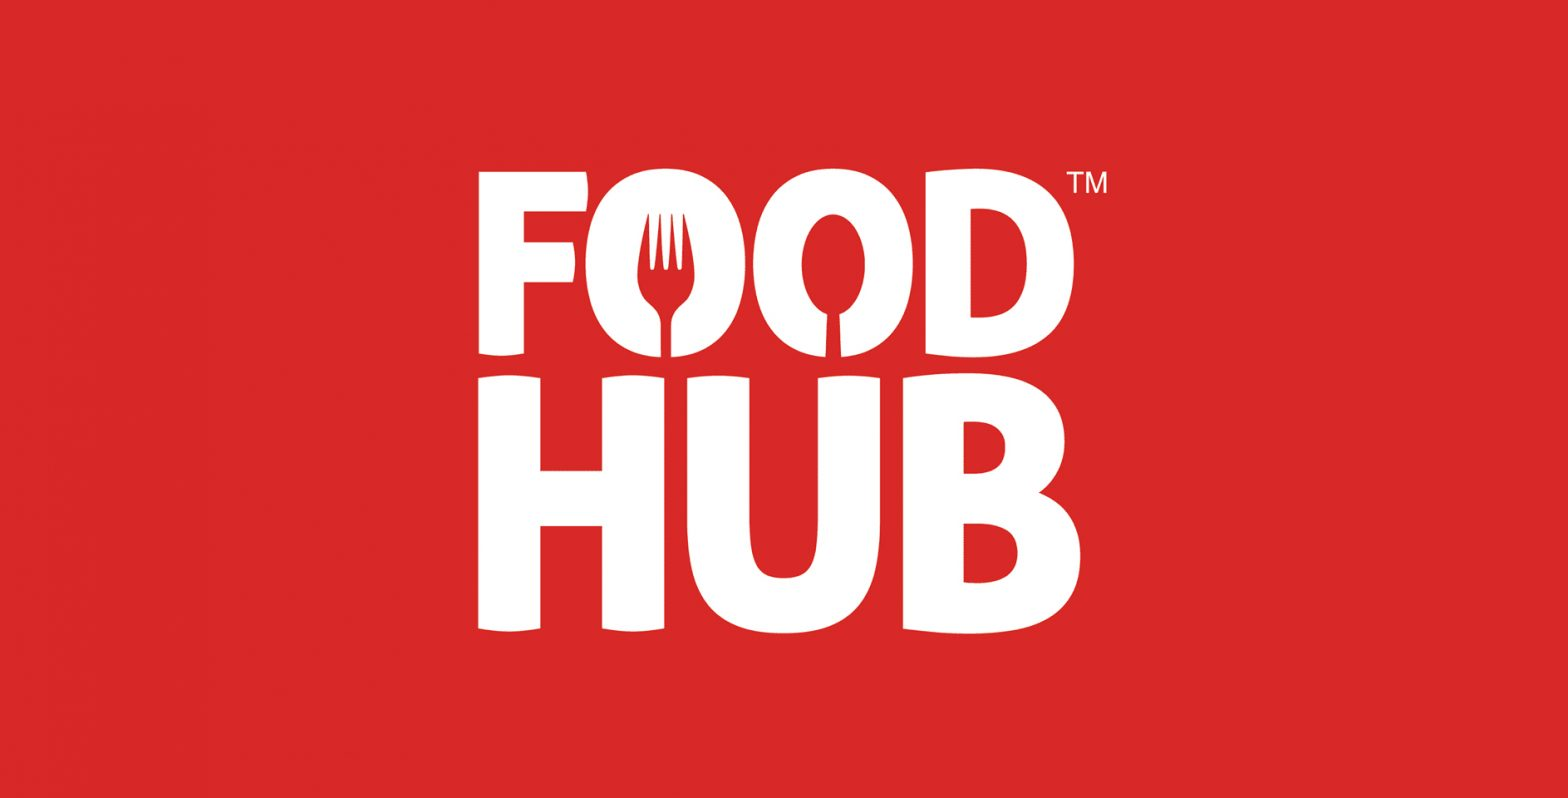 Foodhub Promo Code for Existing Users: 3 Must-Know Facts